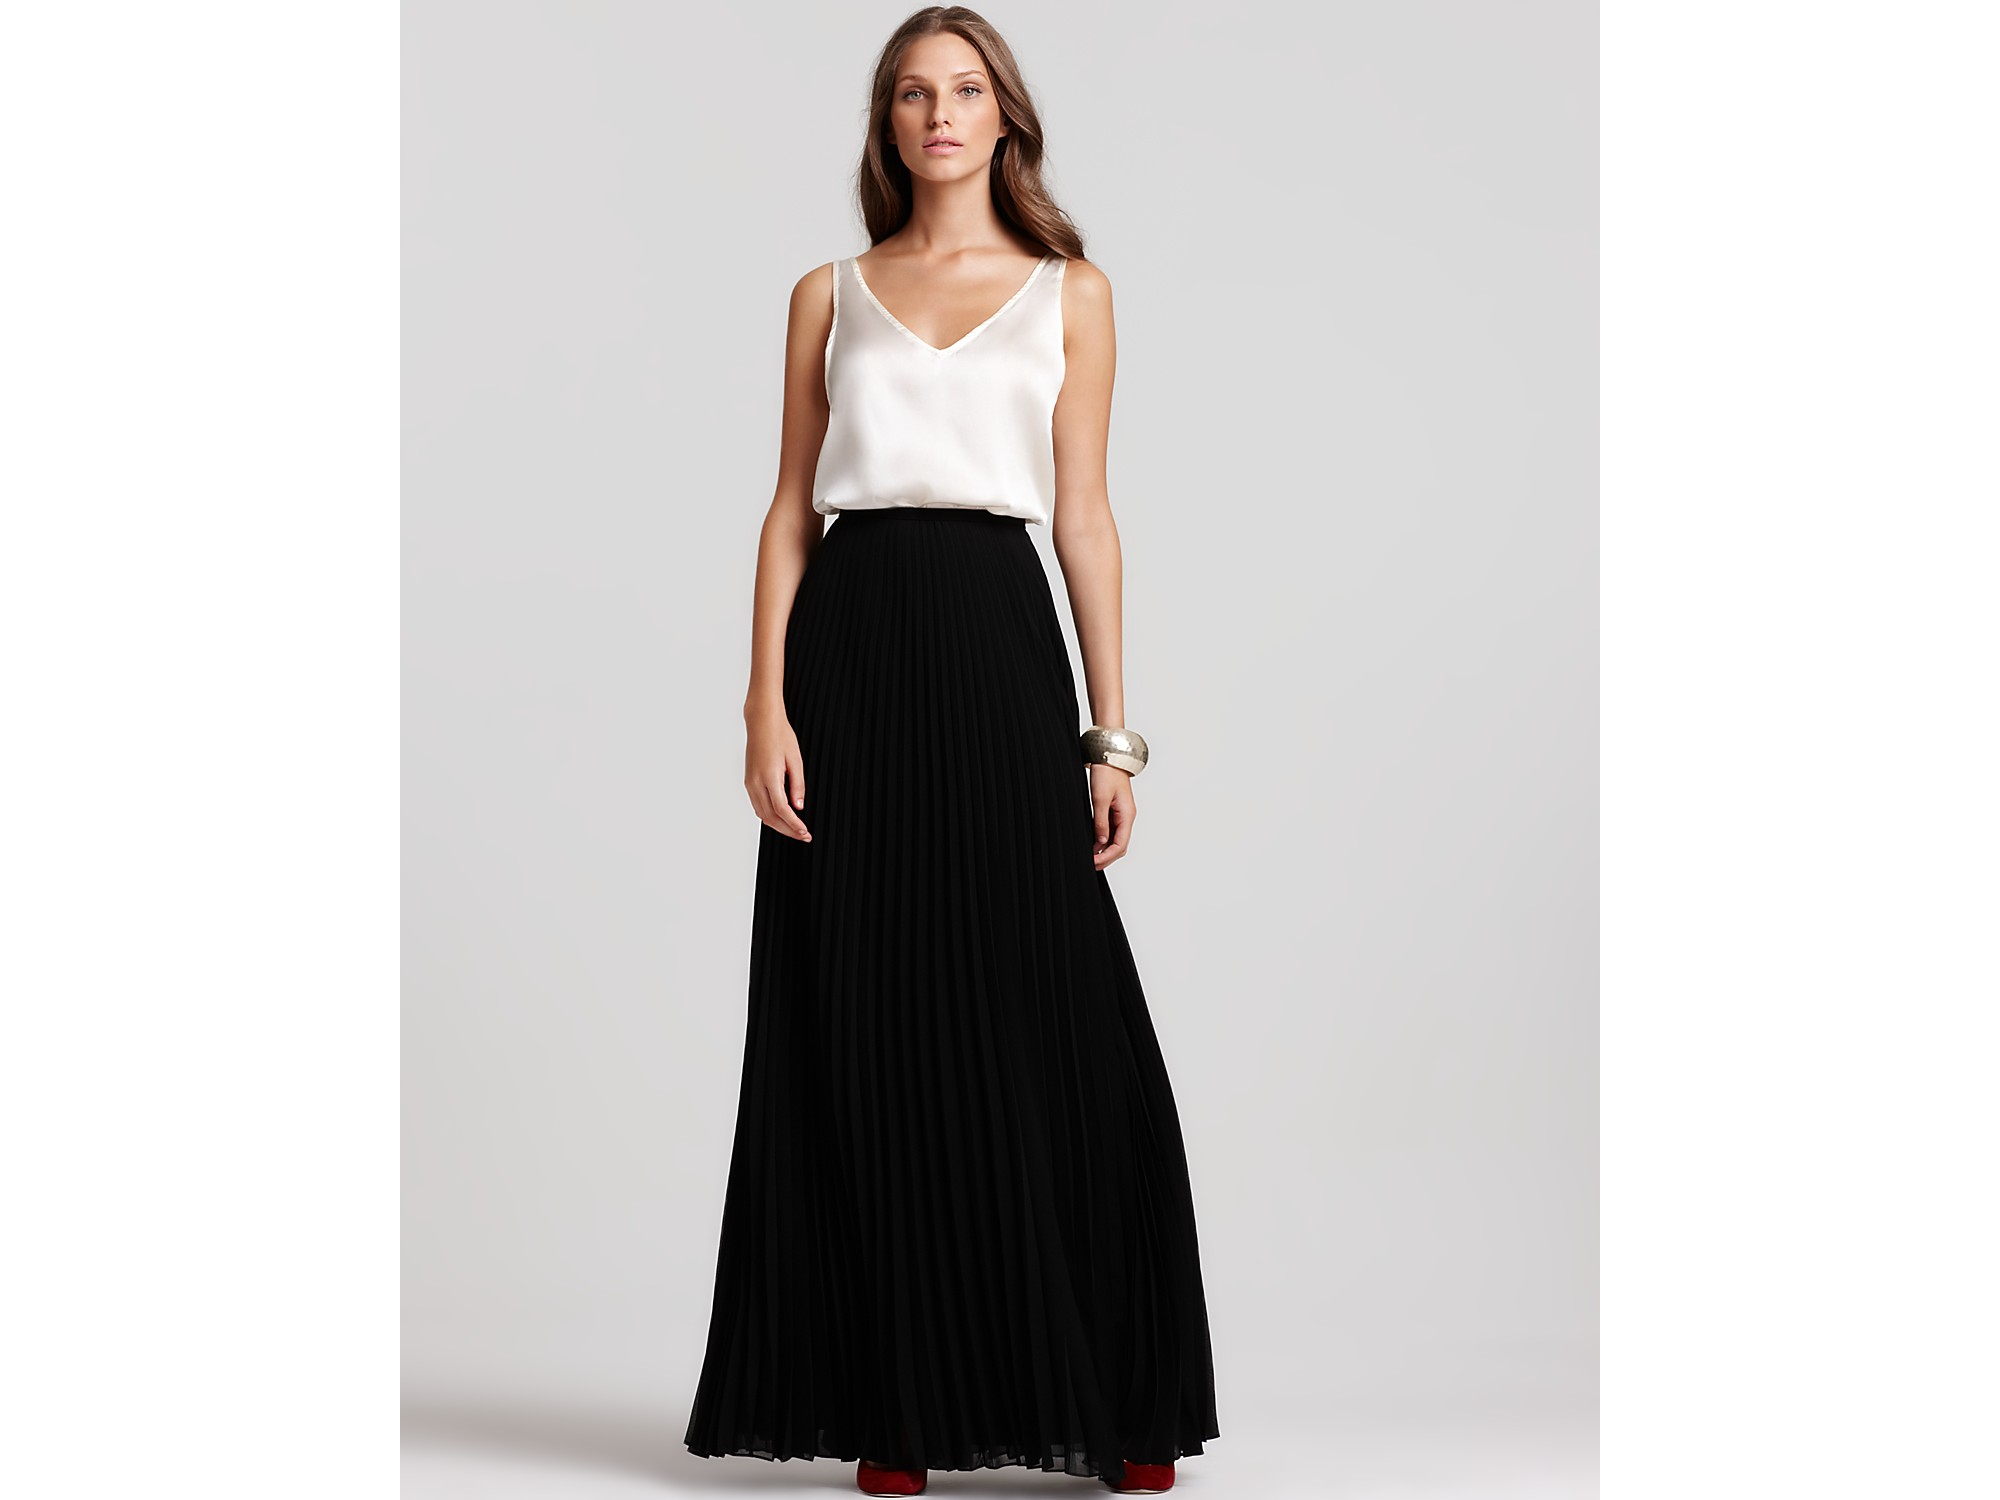 944c71dbd7 Black Pleated Maxi Skirt - Redskirtz